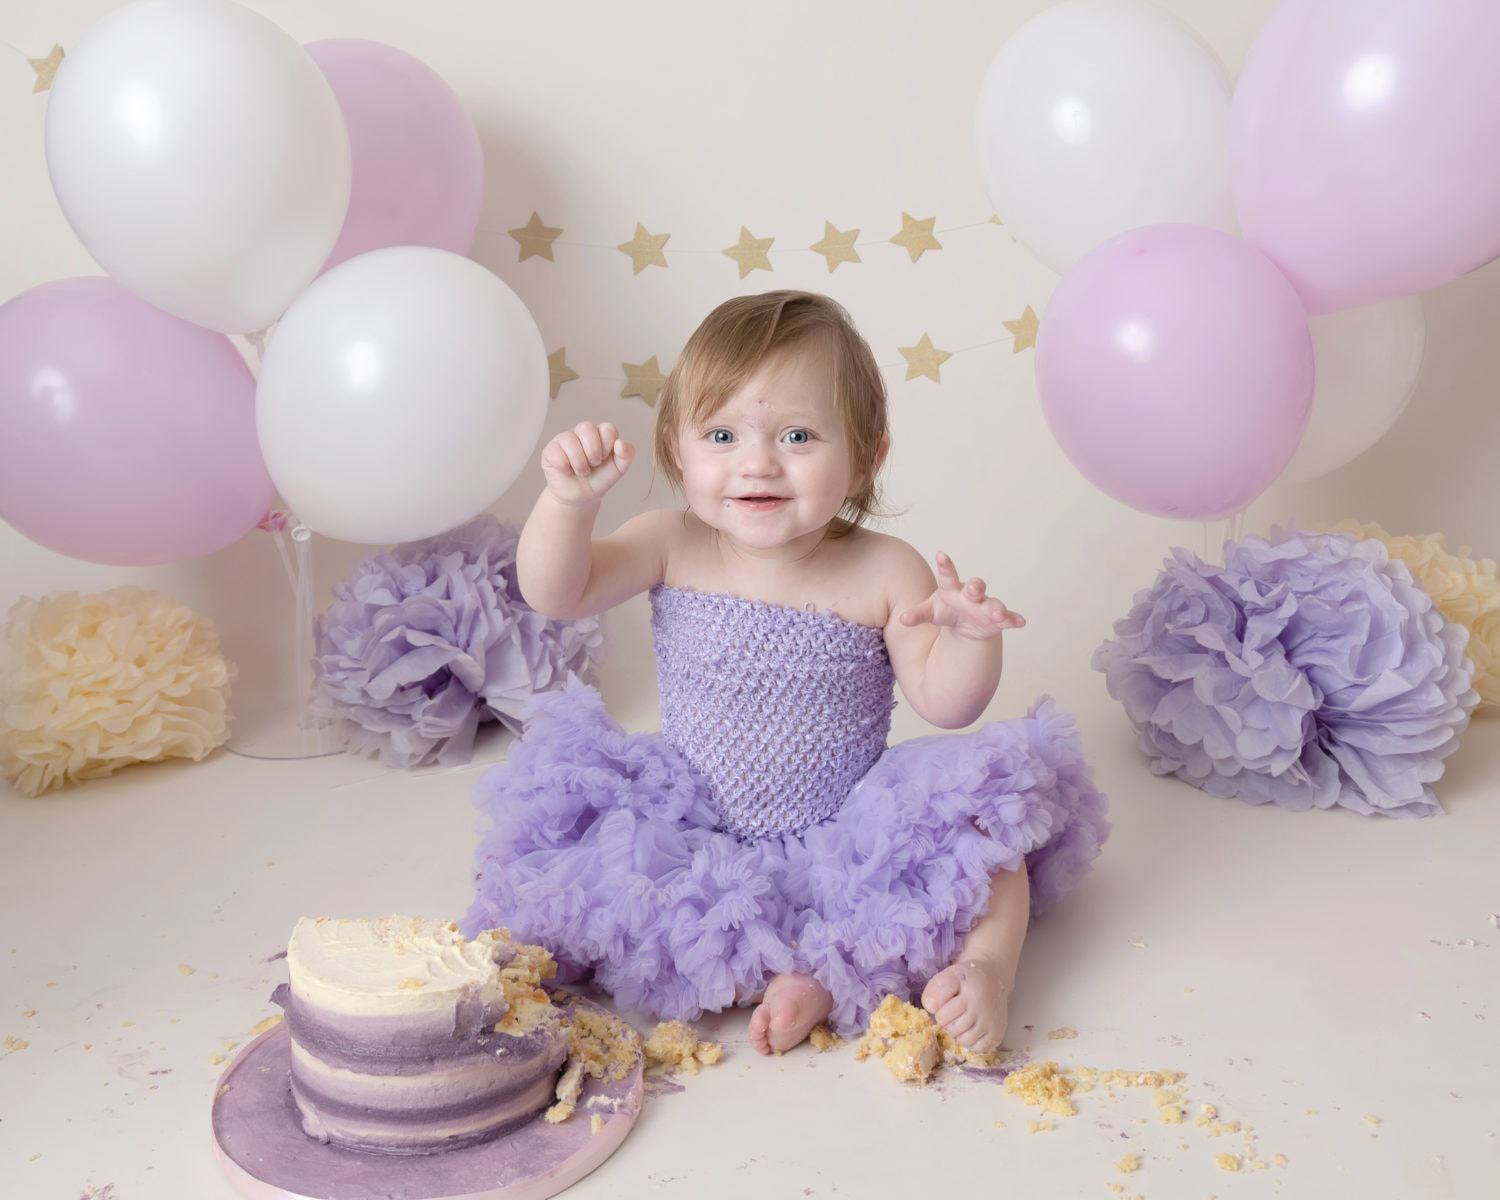 baby girl having fun eating cake